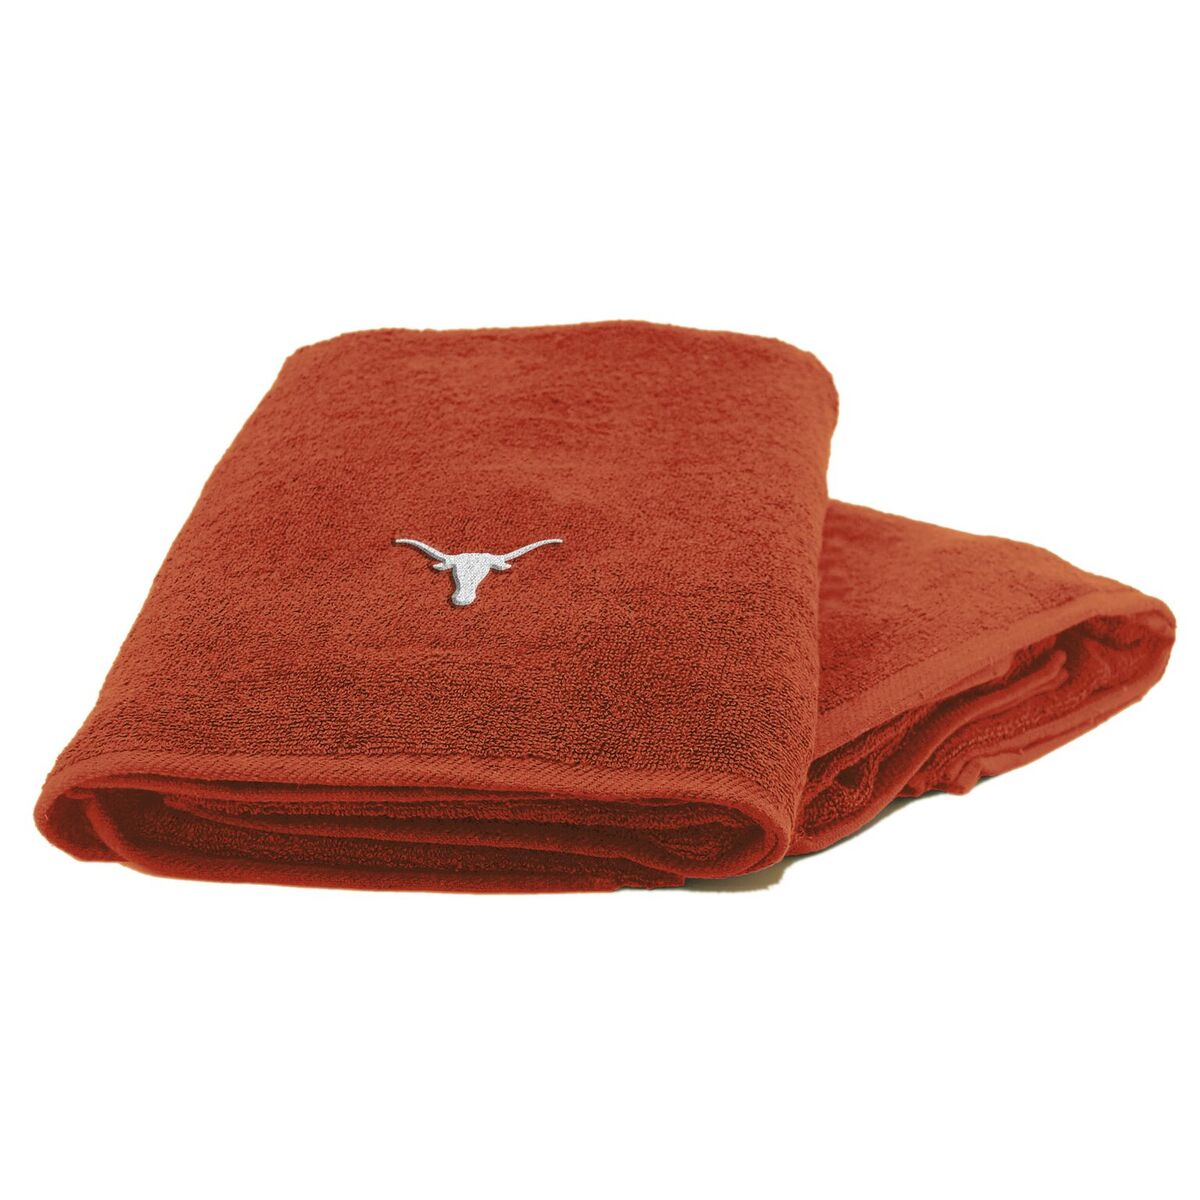 Texas Longhorns 2-Piece Towel Set, With 26x15 Hand and 25x50 Bath Towel